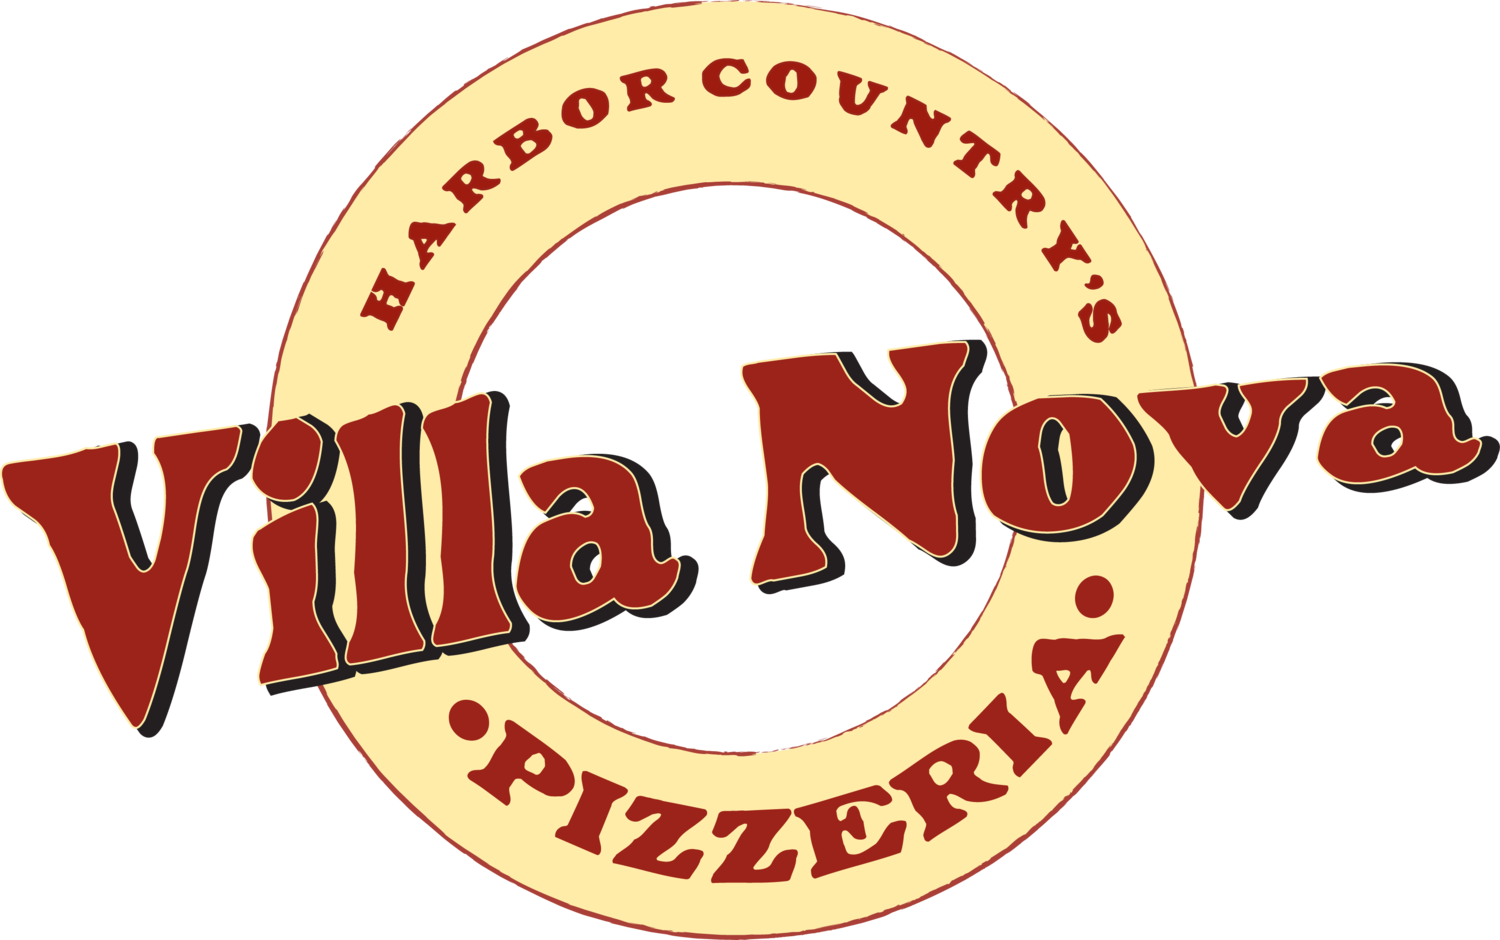 Villa Nova Pizzeria New Buffalo